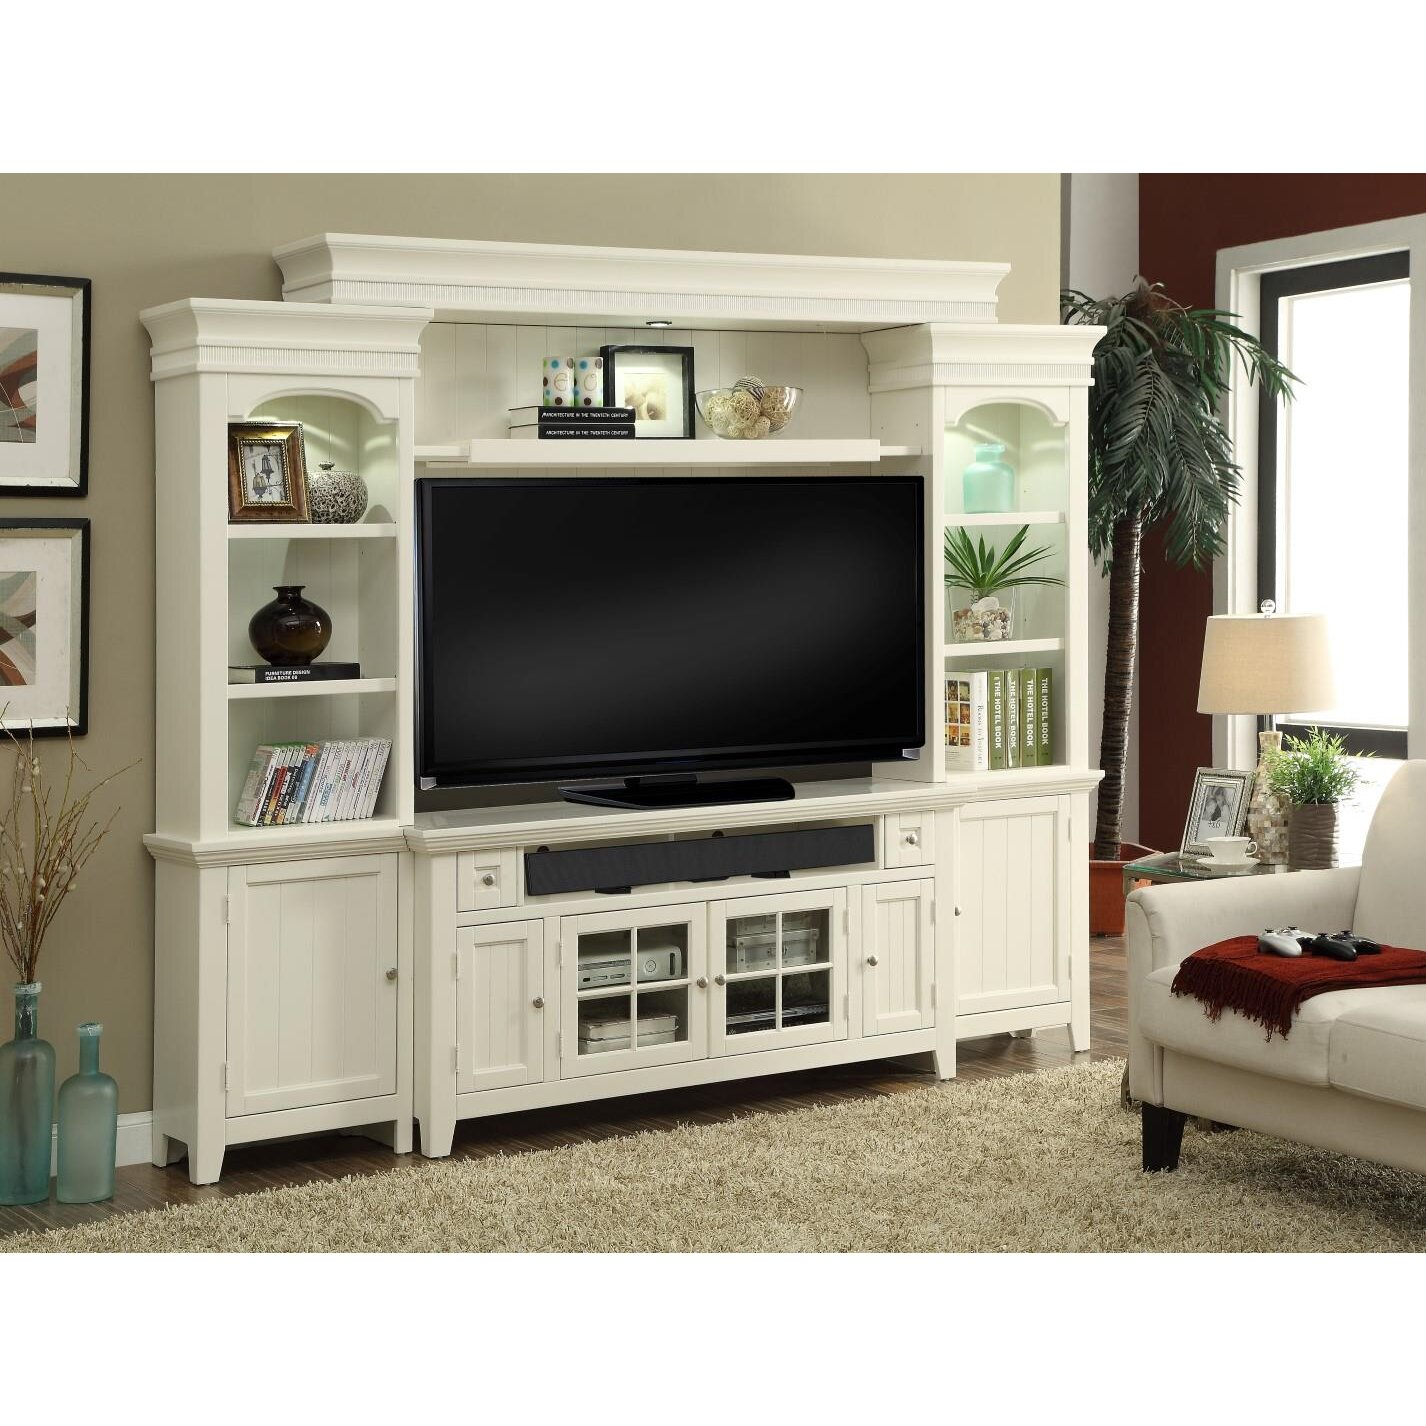 Loon Peak Shoshoni 62 Quot Console Entertainment Center